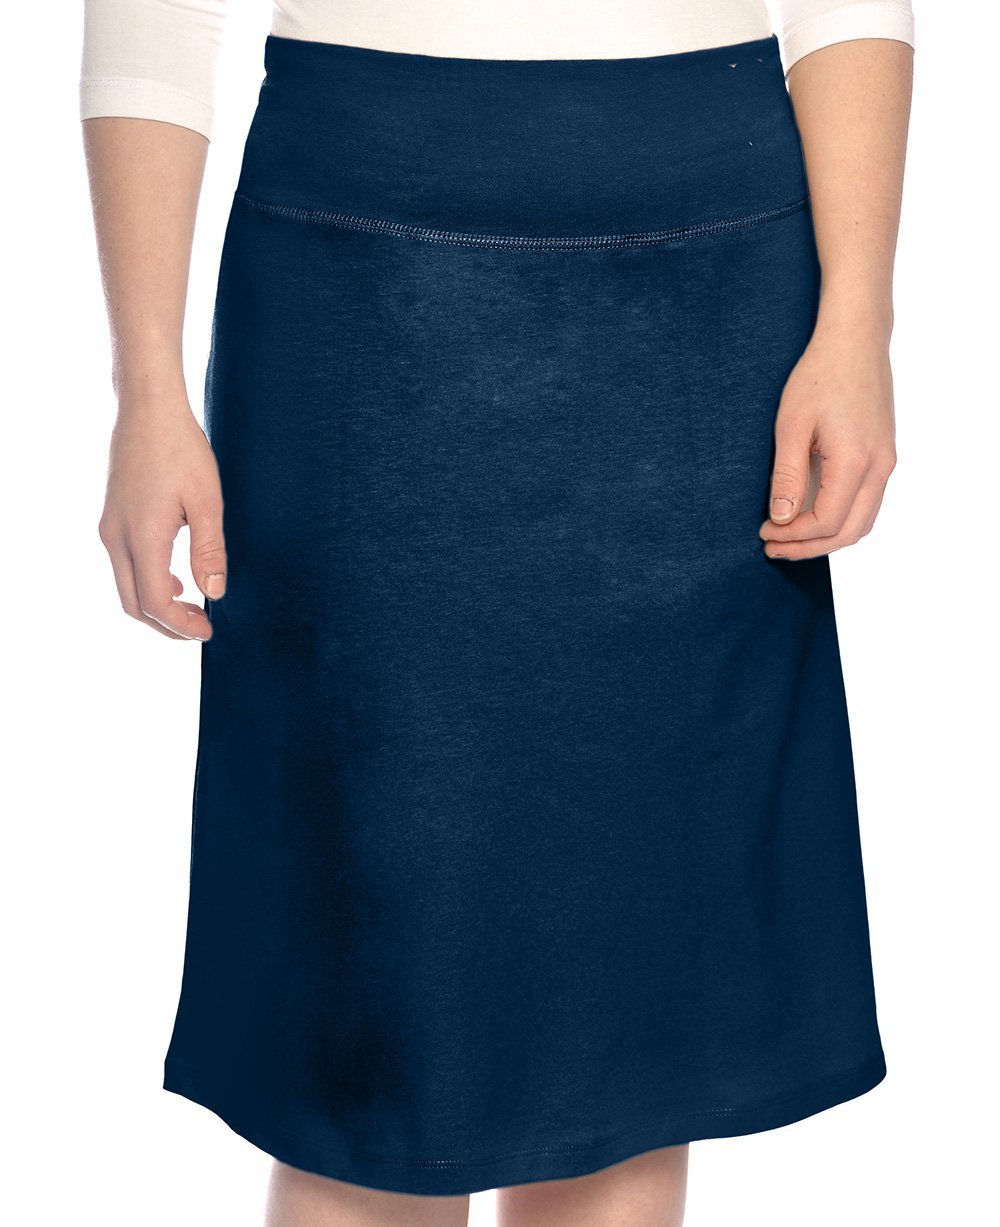 Kosher Casual Kids Big Girls' Modest A-Line French Terry Cotton Spandex Knee Length Sports Skirt XL Navy